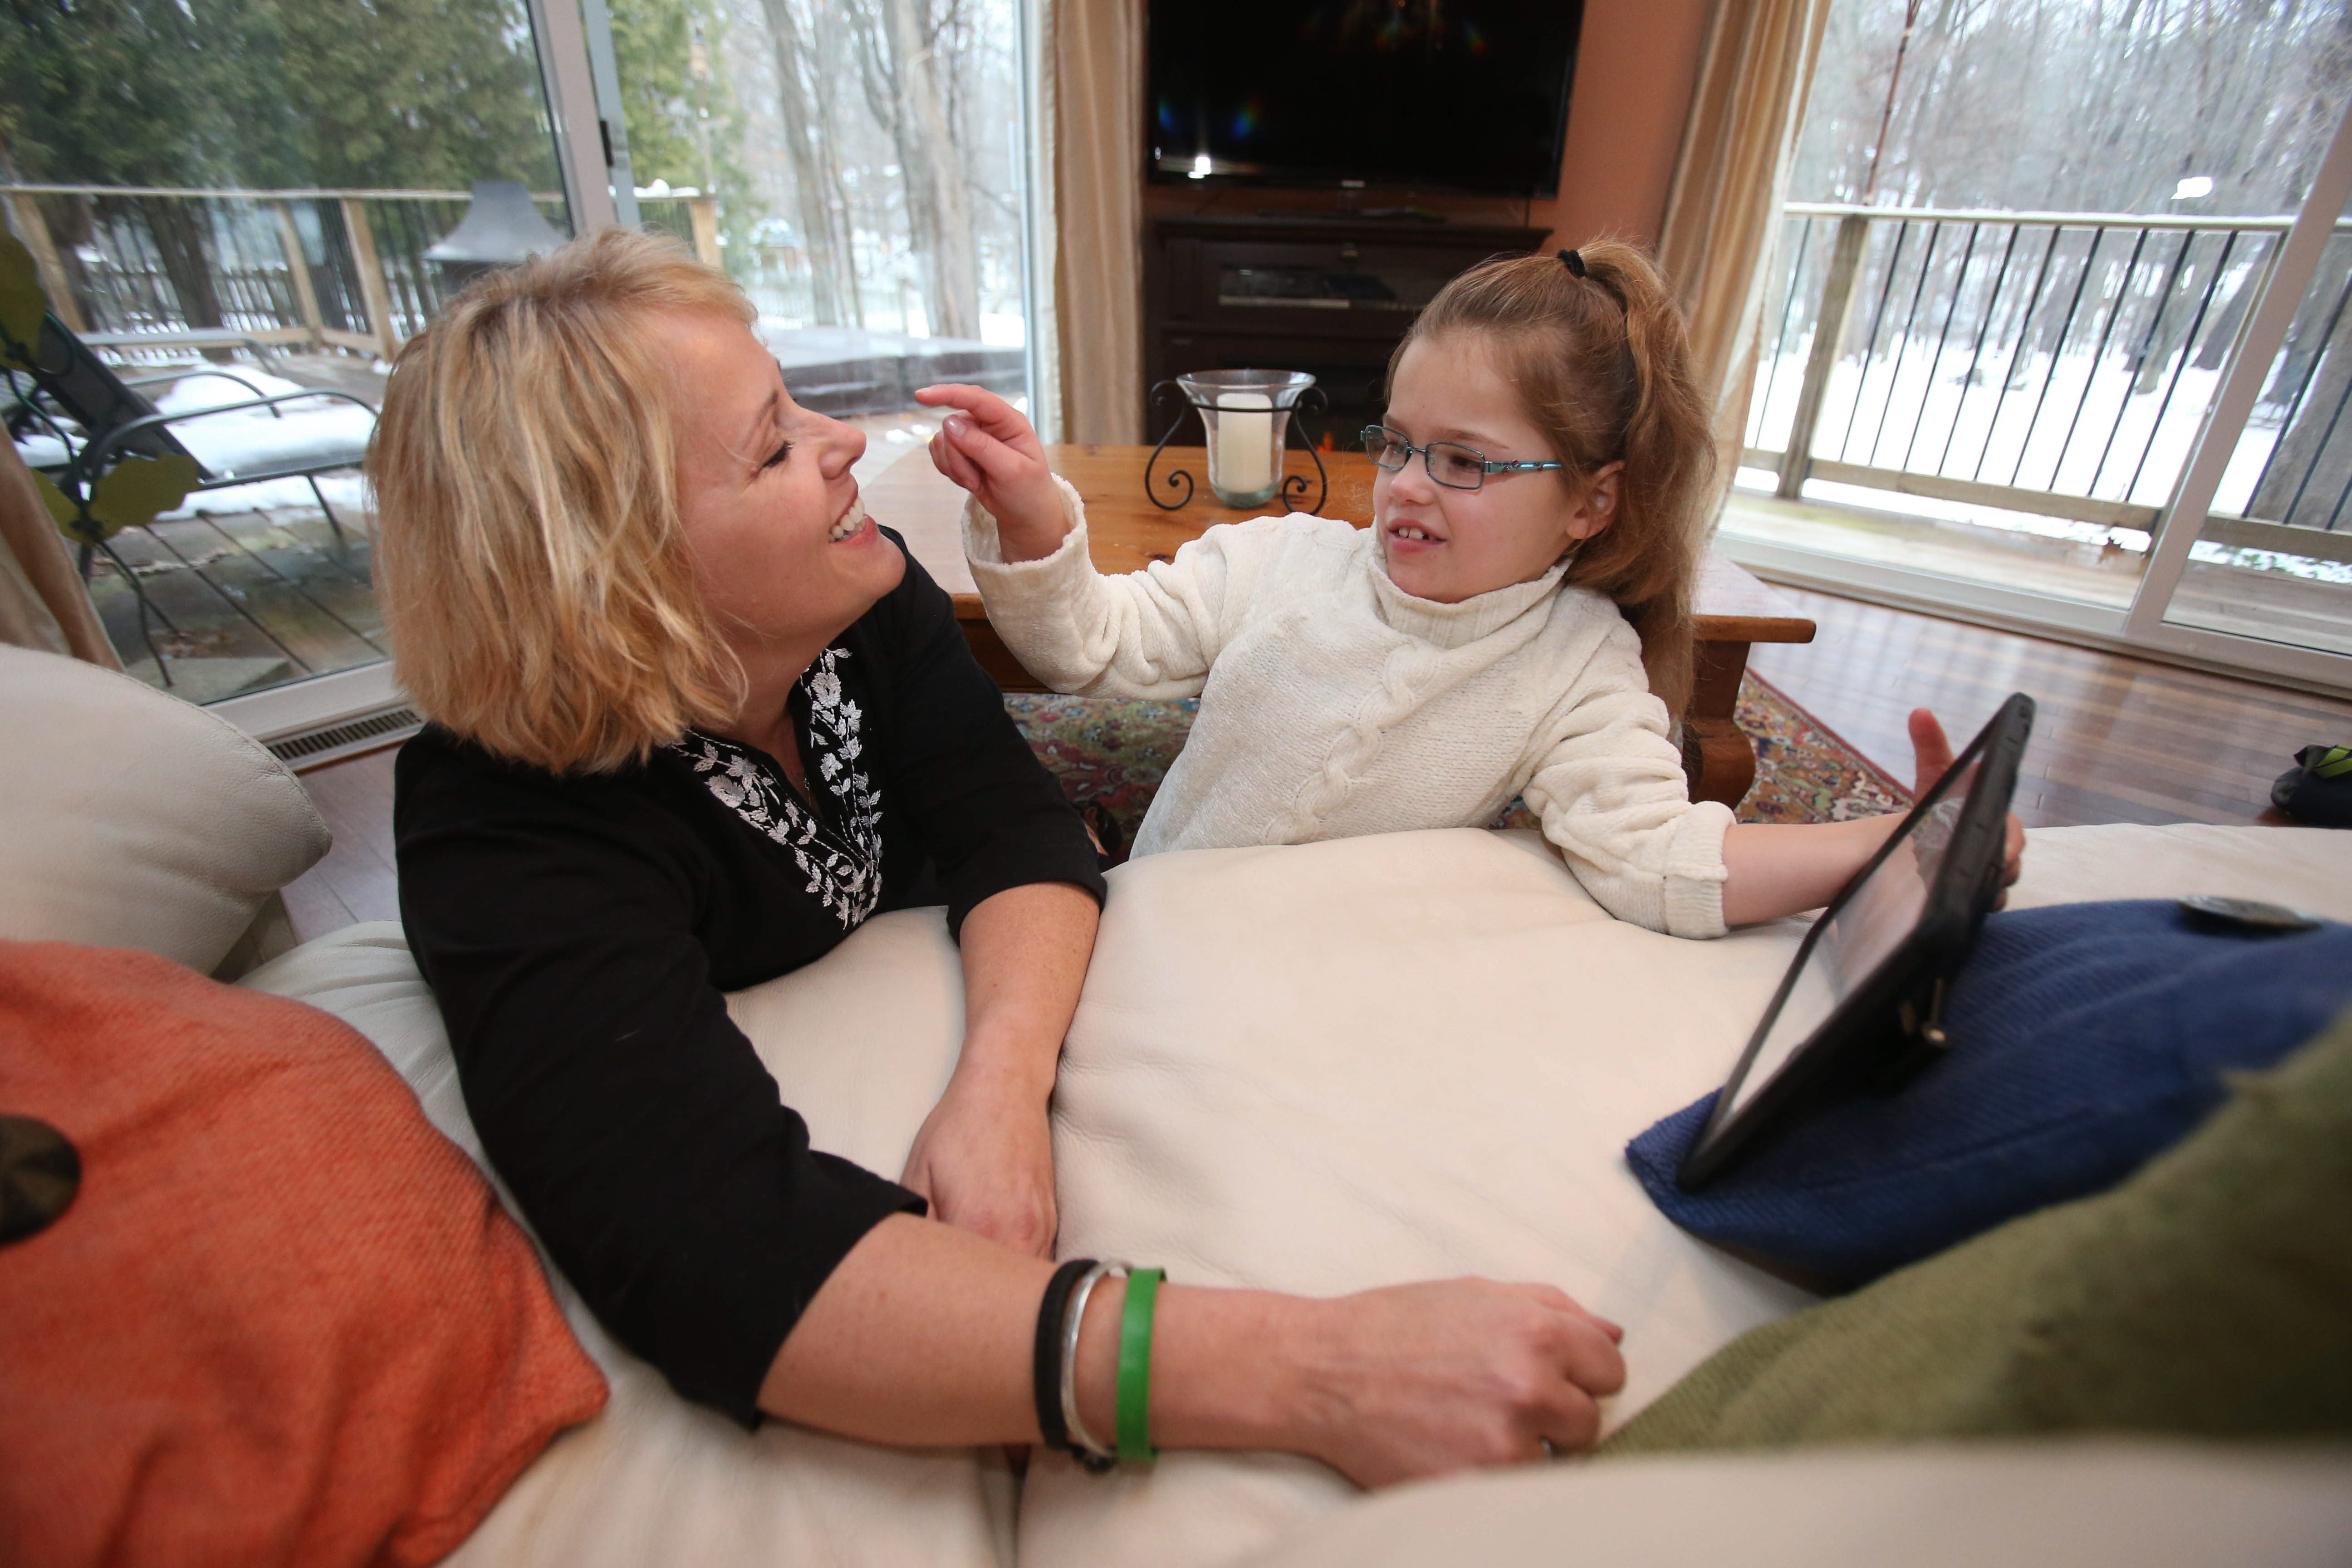 Wendy Conte of Orchard Park is pushing for Albany to allow the use of medical marijuana for children such as her 8-year-old daughter Anna, who suffers from severe seizures.